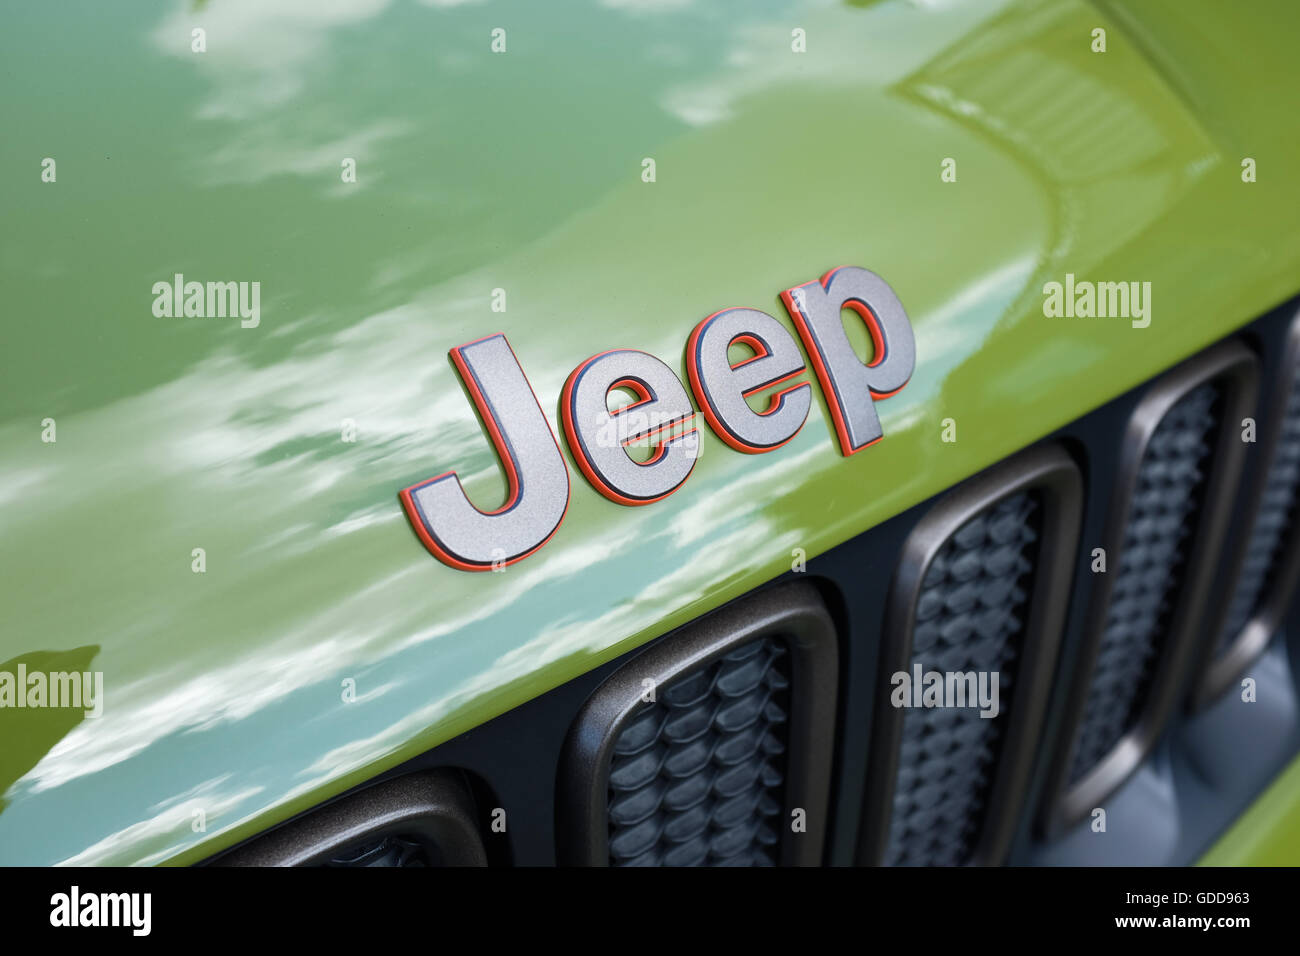 The word 'Jeep' on a green Jeep vehicle. - Stock Image